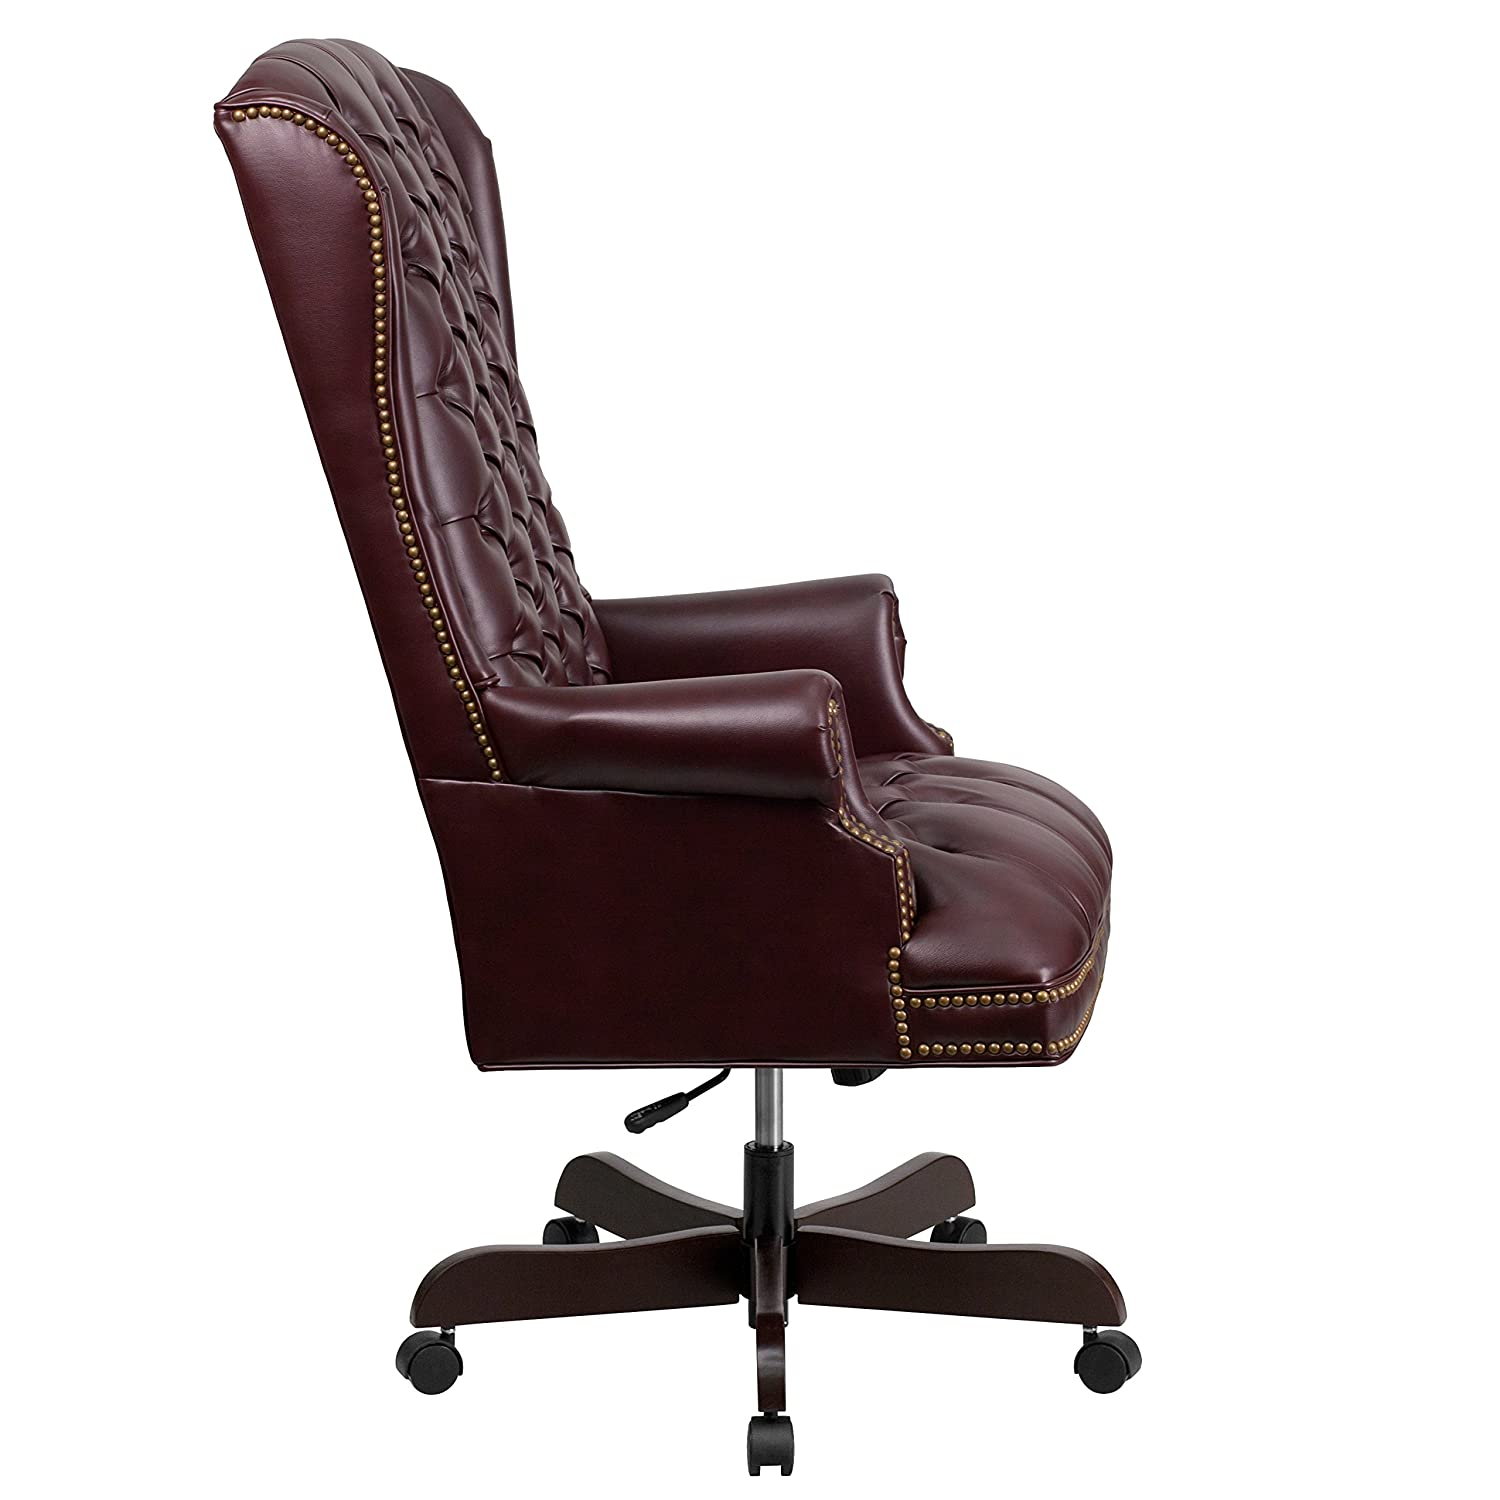 T Amazoncom Flash Furniture High Back Traditional Tufted Burgundy Leather  Executive Swivel Chair With Arms Kitchen U0026 Dining